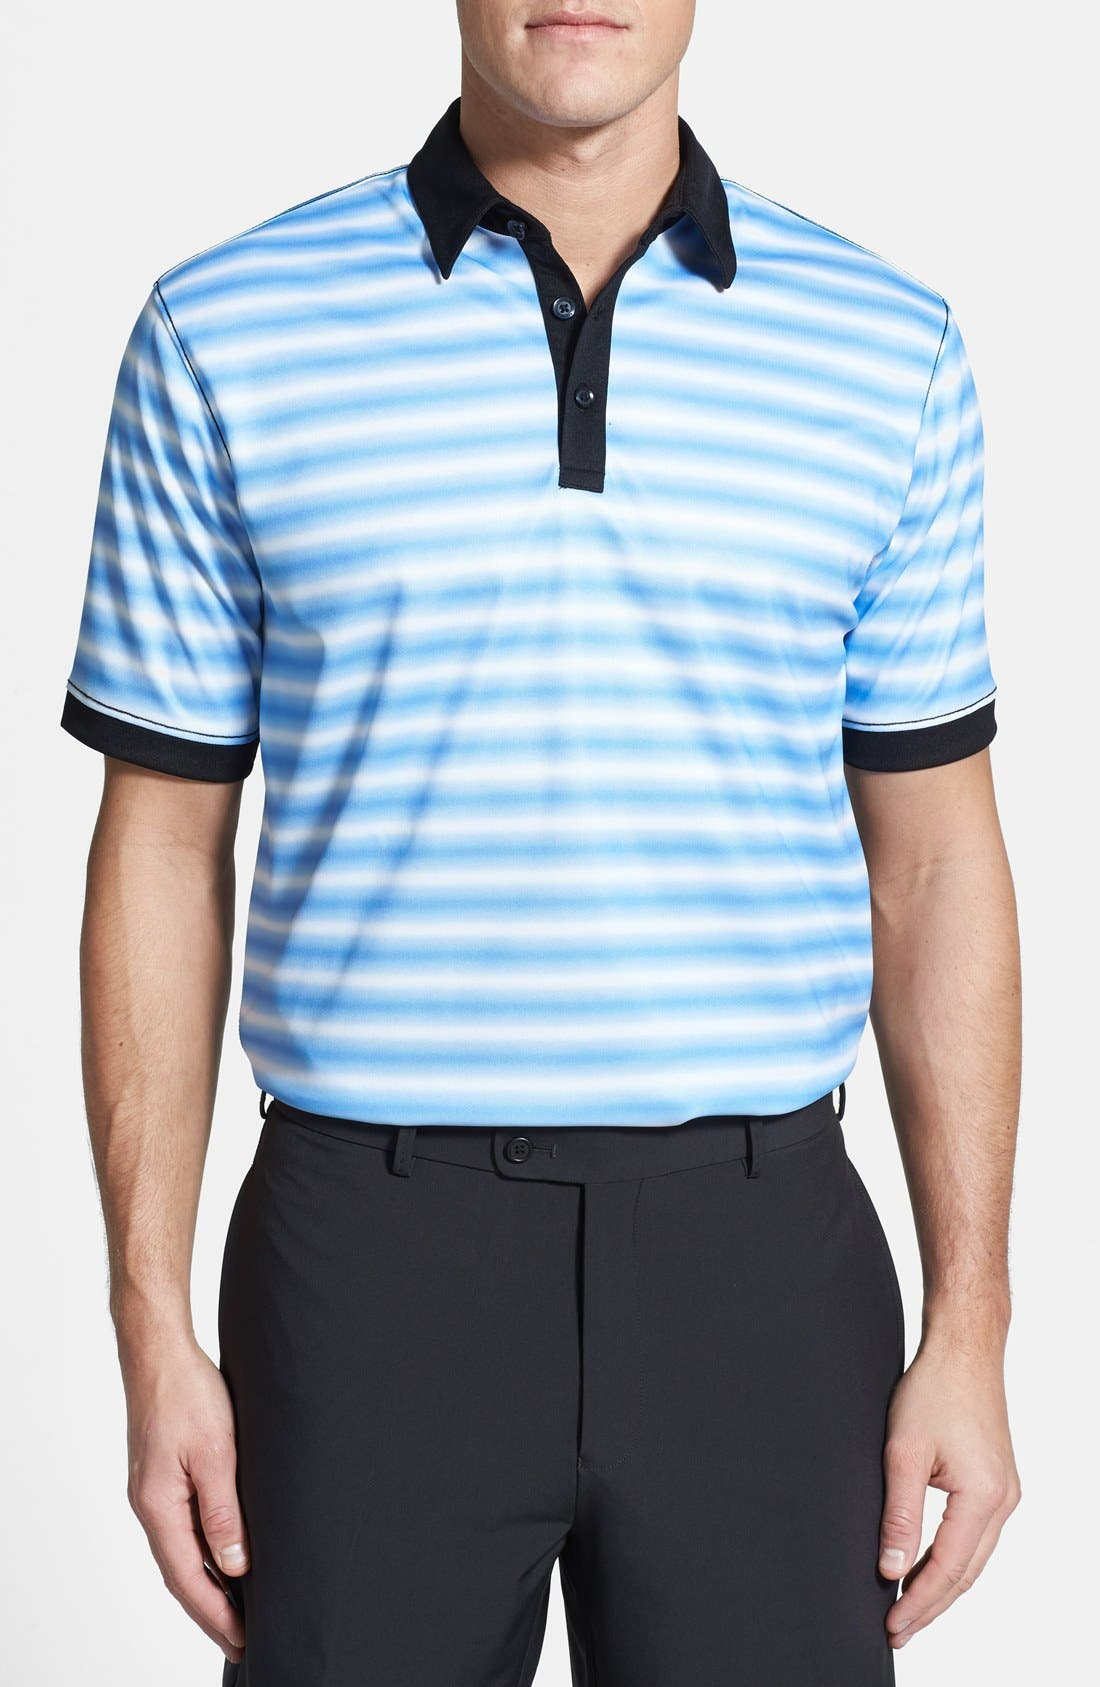 Alternate Image 1 Selected - Callaway Golf® 'Bolt' Opti-Dri Moisture Wicking Polo